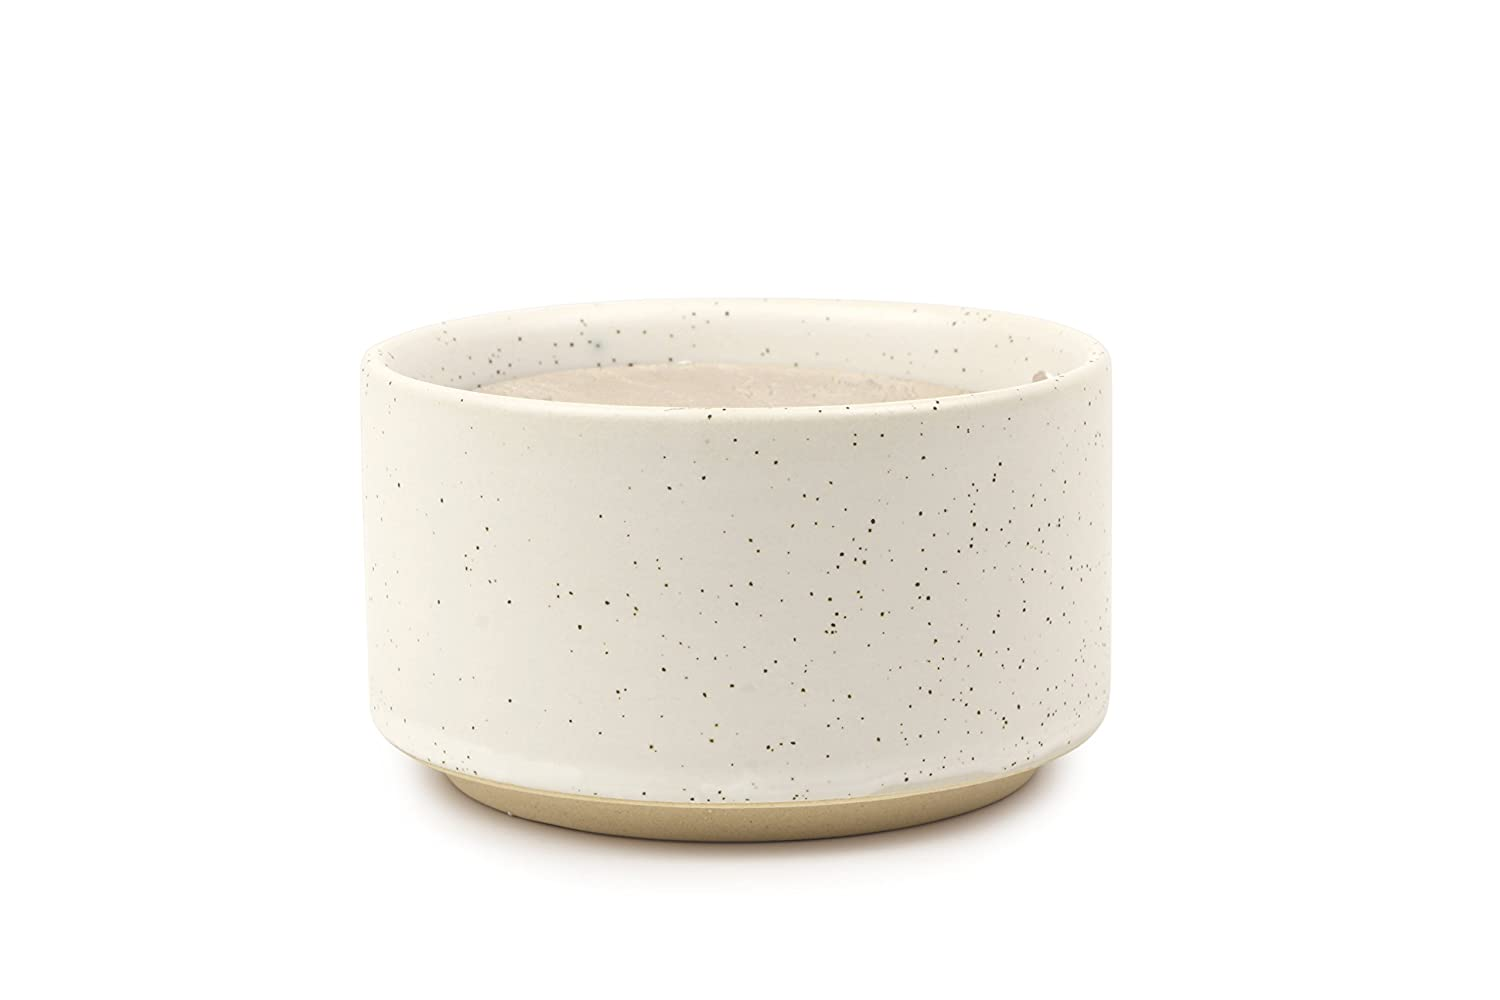 Paddywax Mesa Collection Scented Soy Wax Candle in Matte Speckled Ceramic, 3.5-Ounce, Cotton & Teak